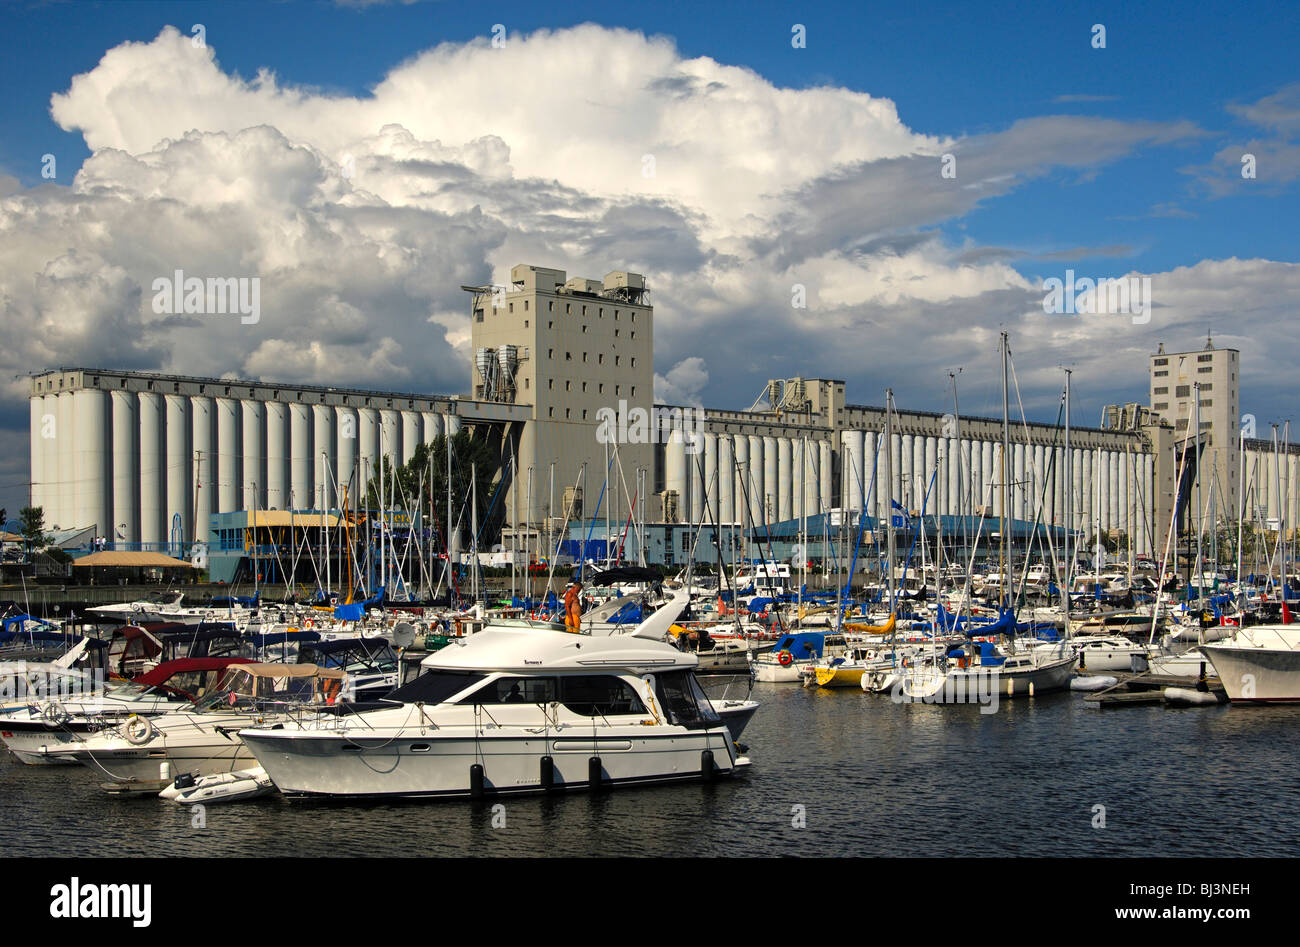 Marina, in the back a grain silo of the Bunge company in the port of Quebec City, Canada Stock Photo